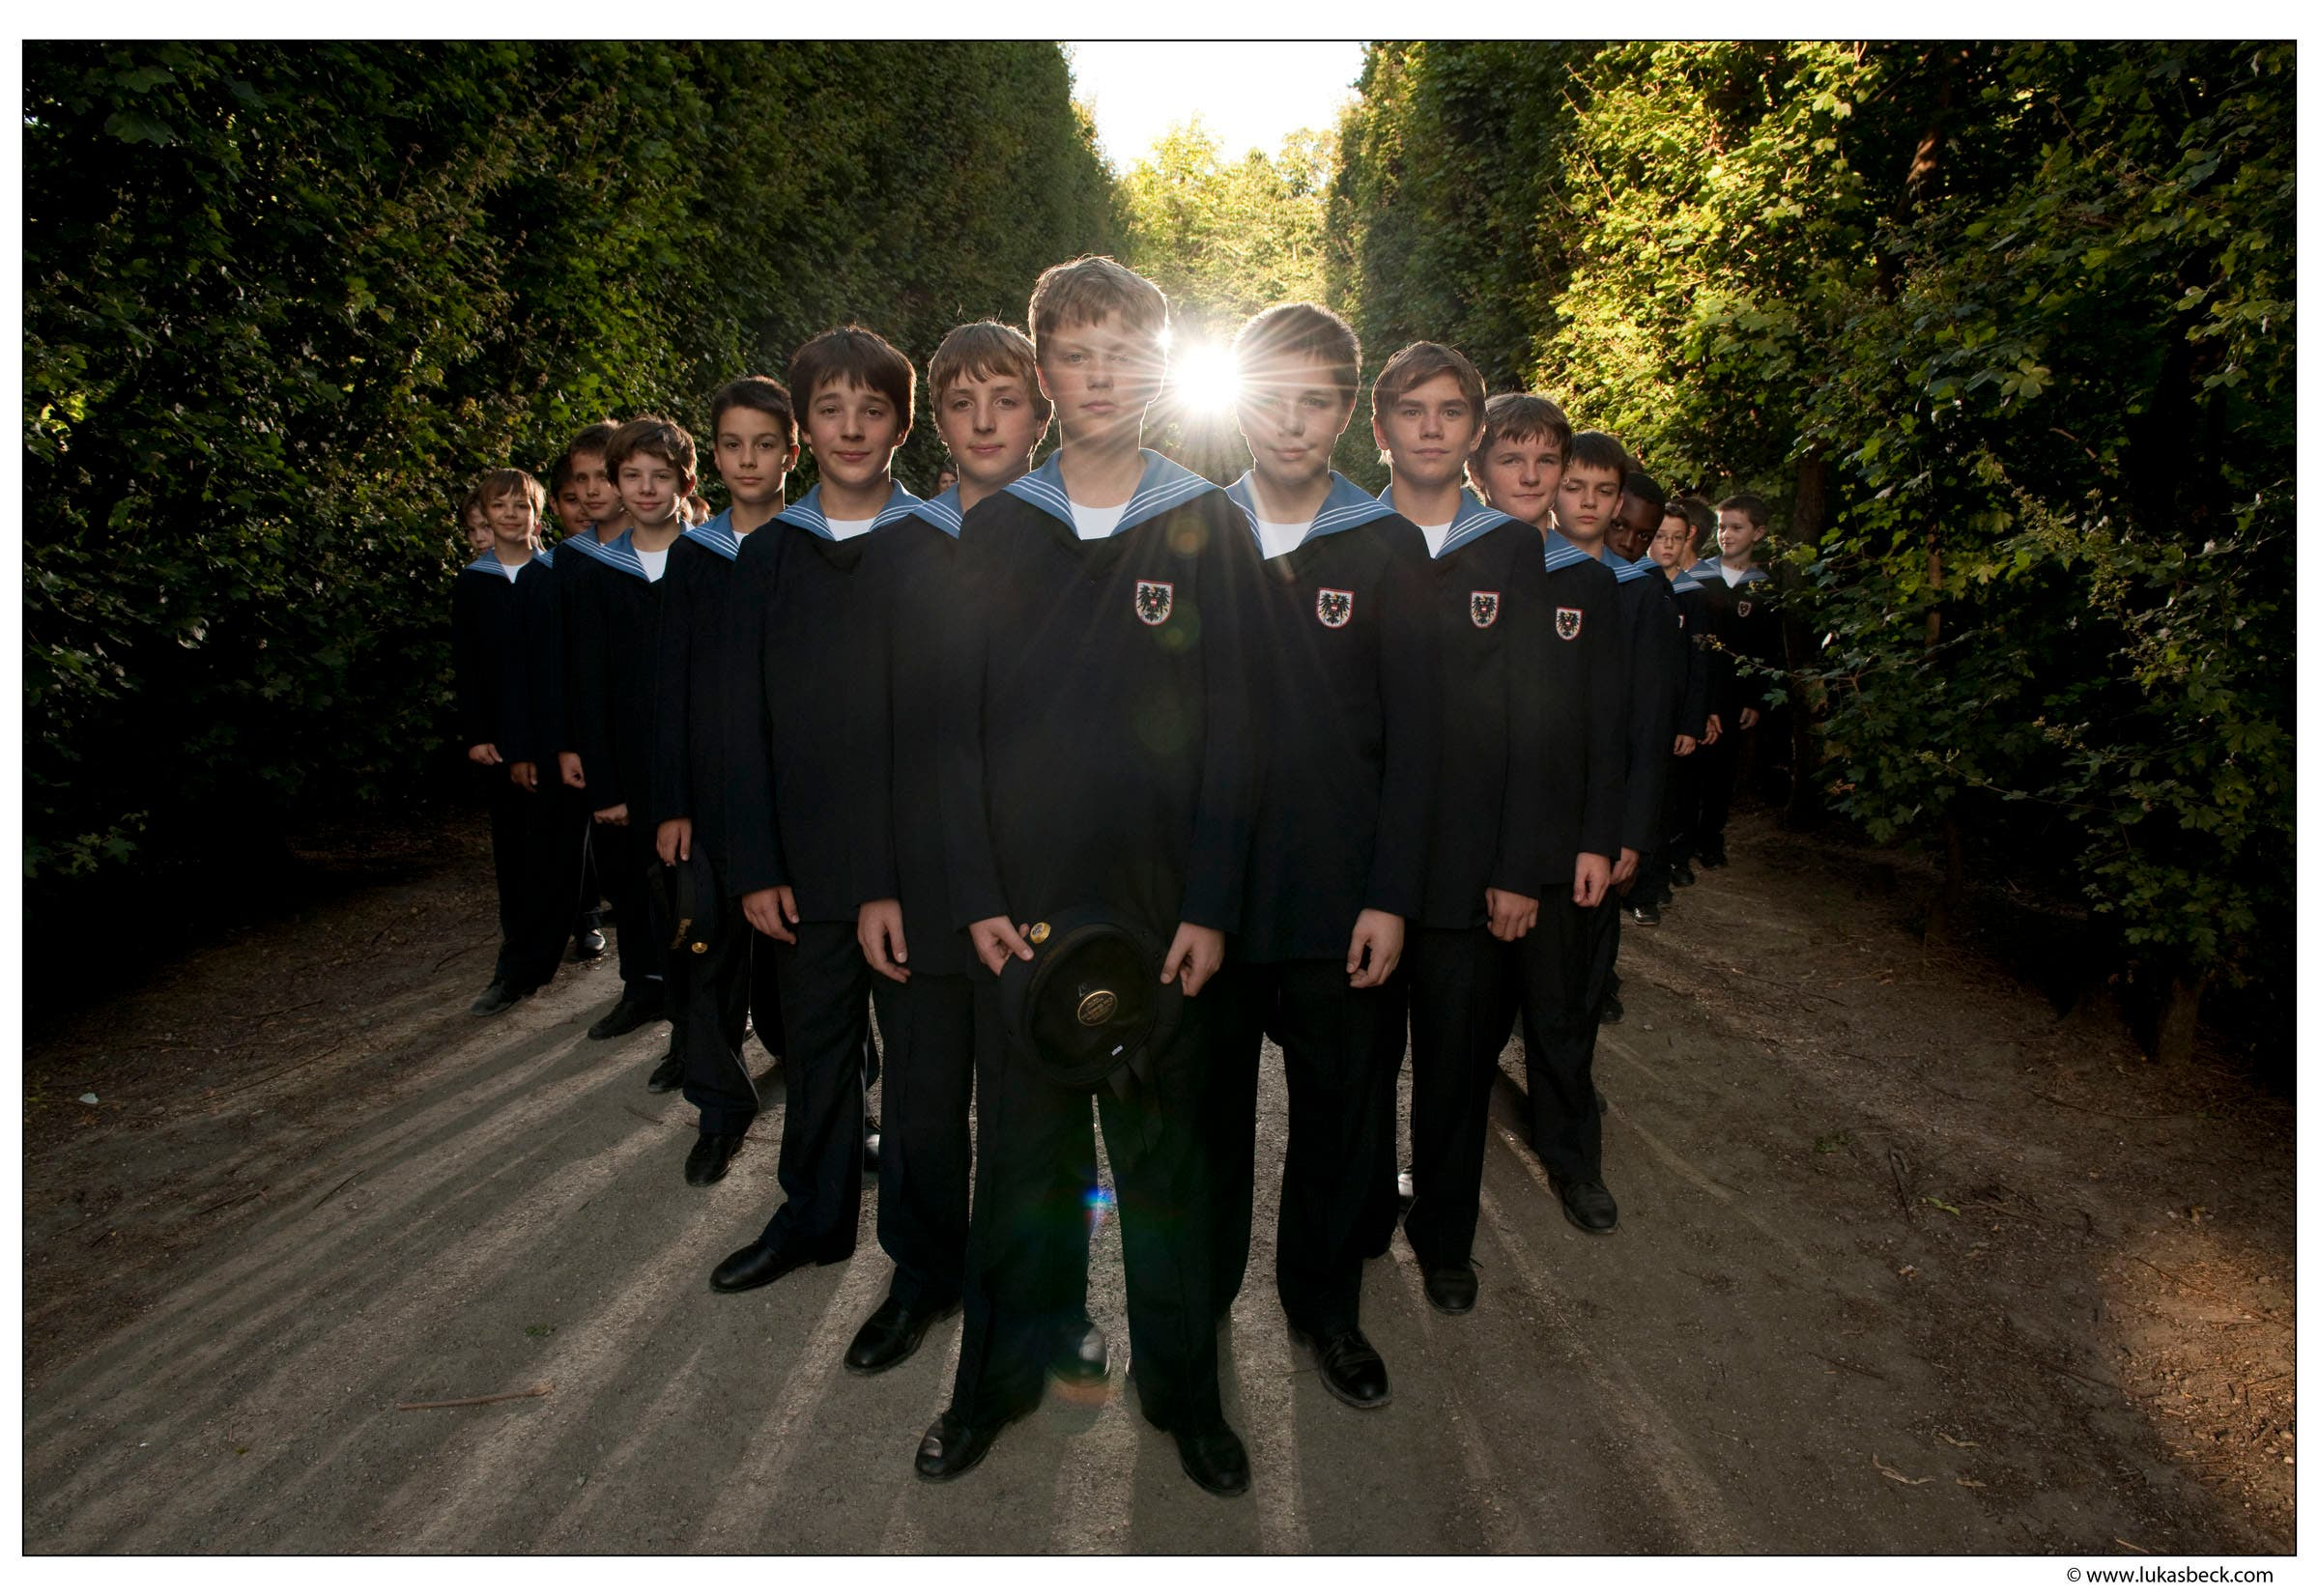 Vienna Boys Choir Christmas.The Vienna Boys Choir To Perform At Gmu On Dec 18 Fairfax